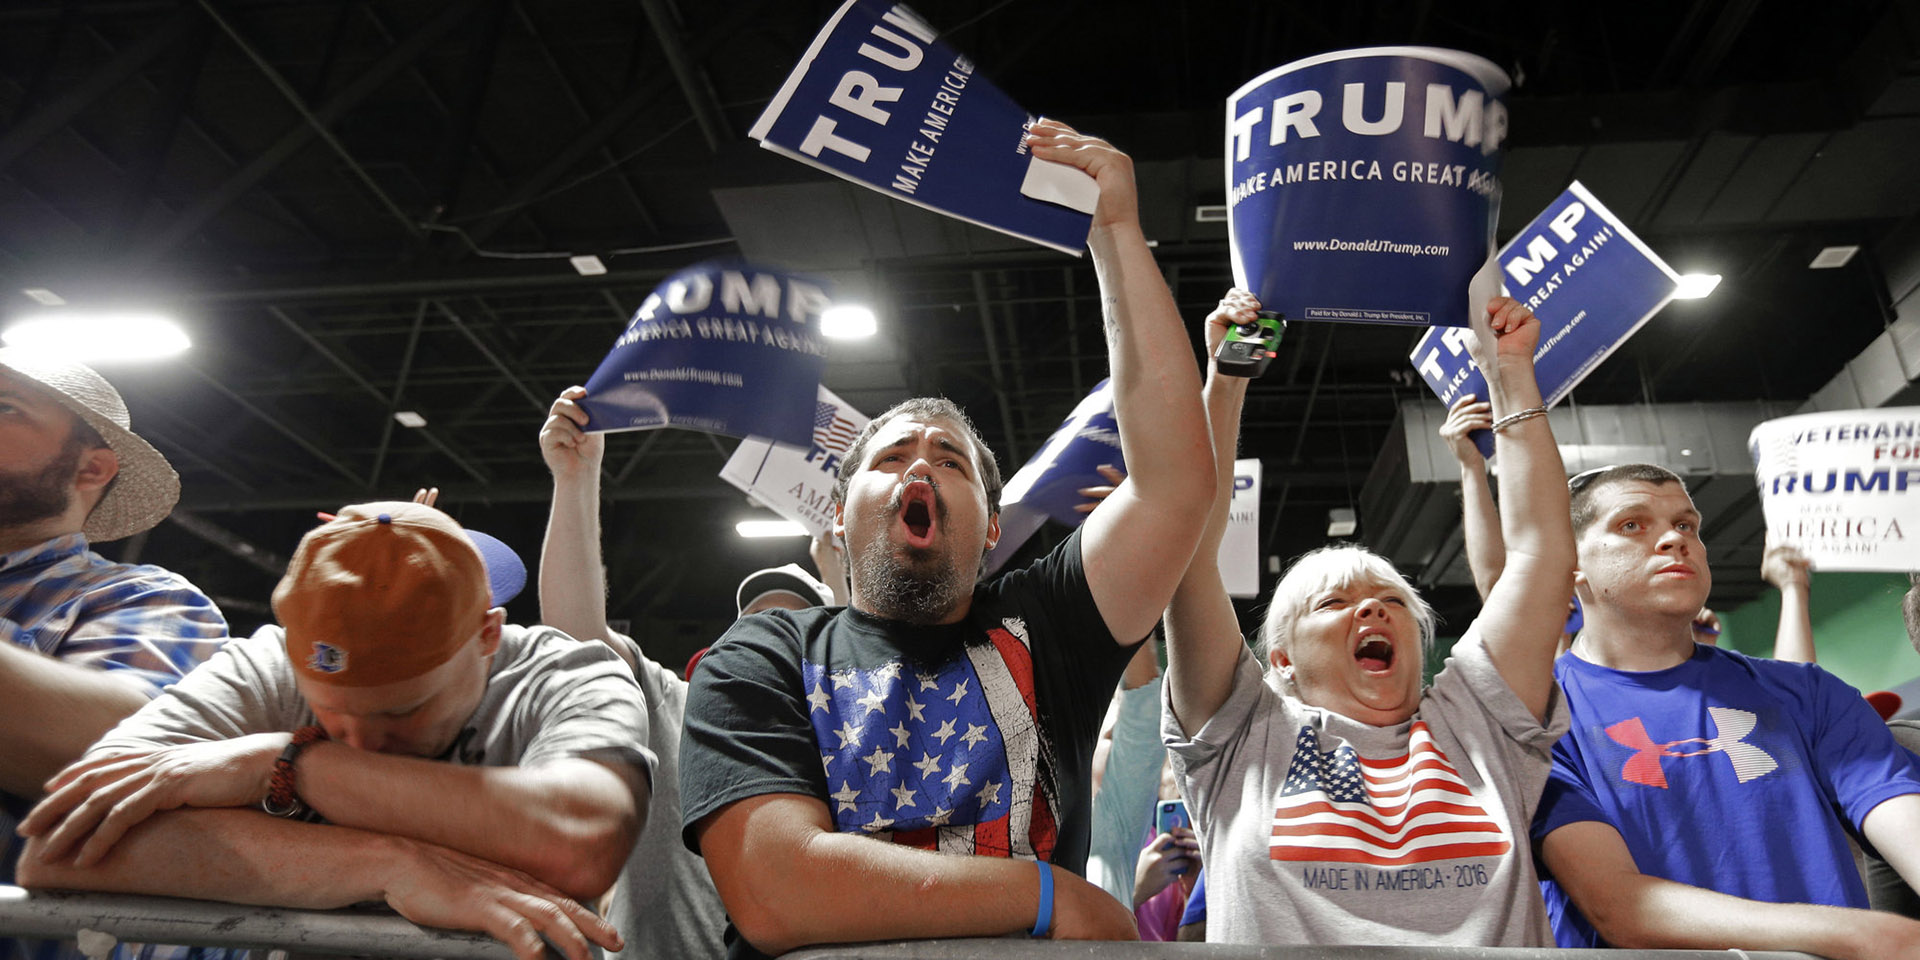 Supporters cheer for Republican presidential candidate Donald Trump during a campaign rally at the Greensboro Coliseum in Greensboro, N.C., Tuesday, June 14, 2016. (AP Photo/Chuck Burton)